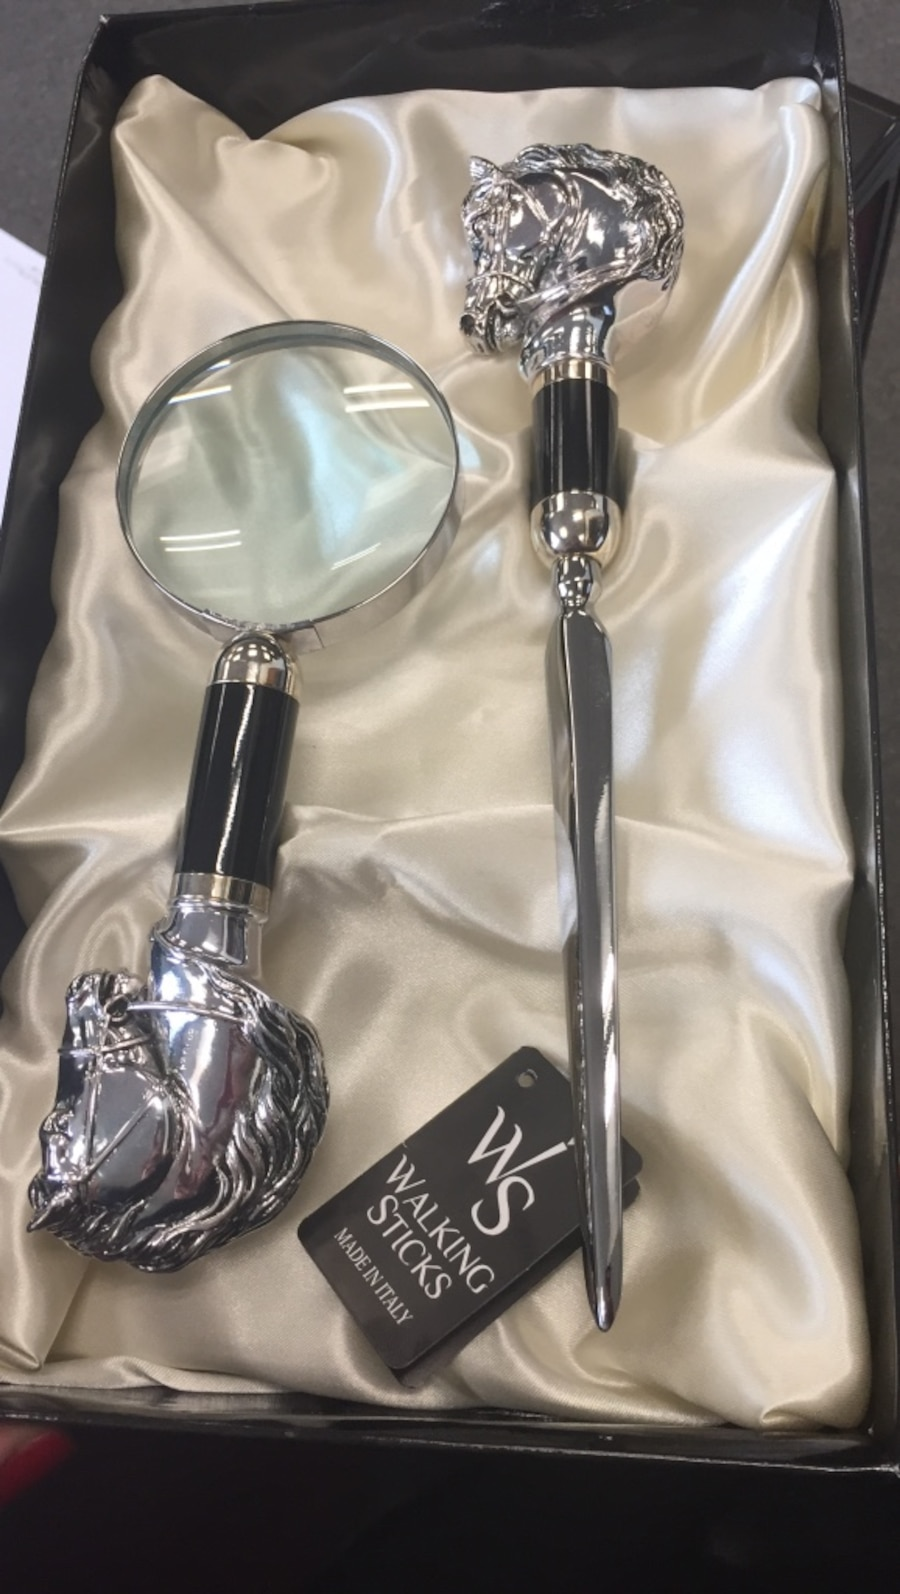 WS walking stick; sterling silver coated handle magnifying glass